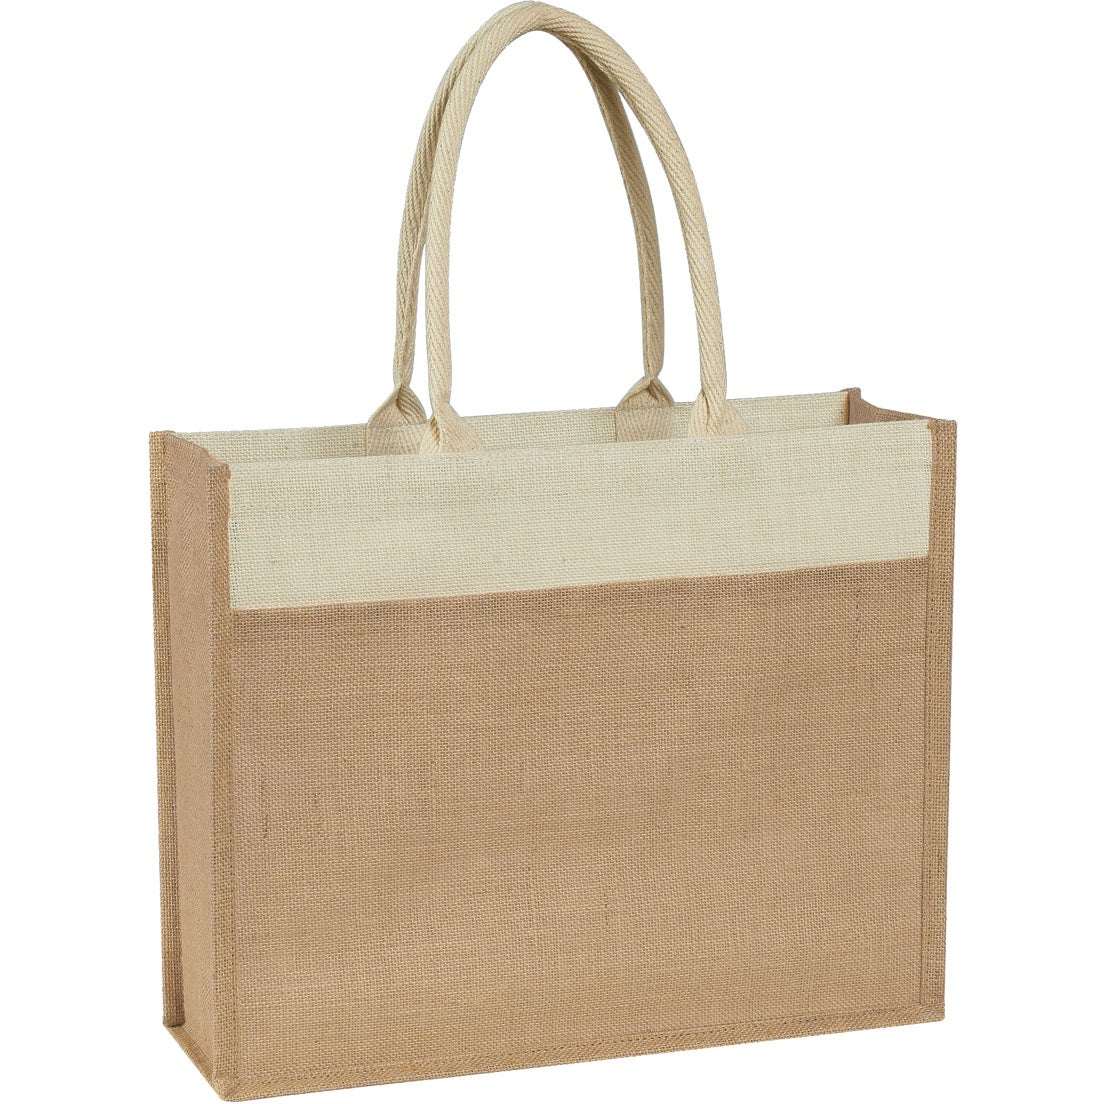 Beige Jute Tote Bag With Front Pocket